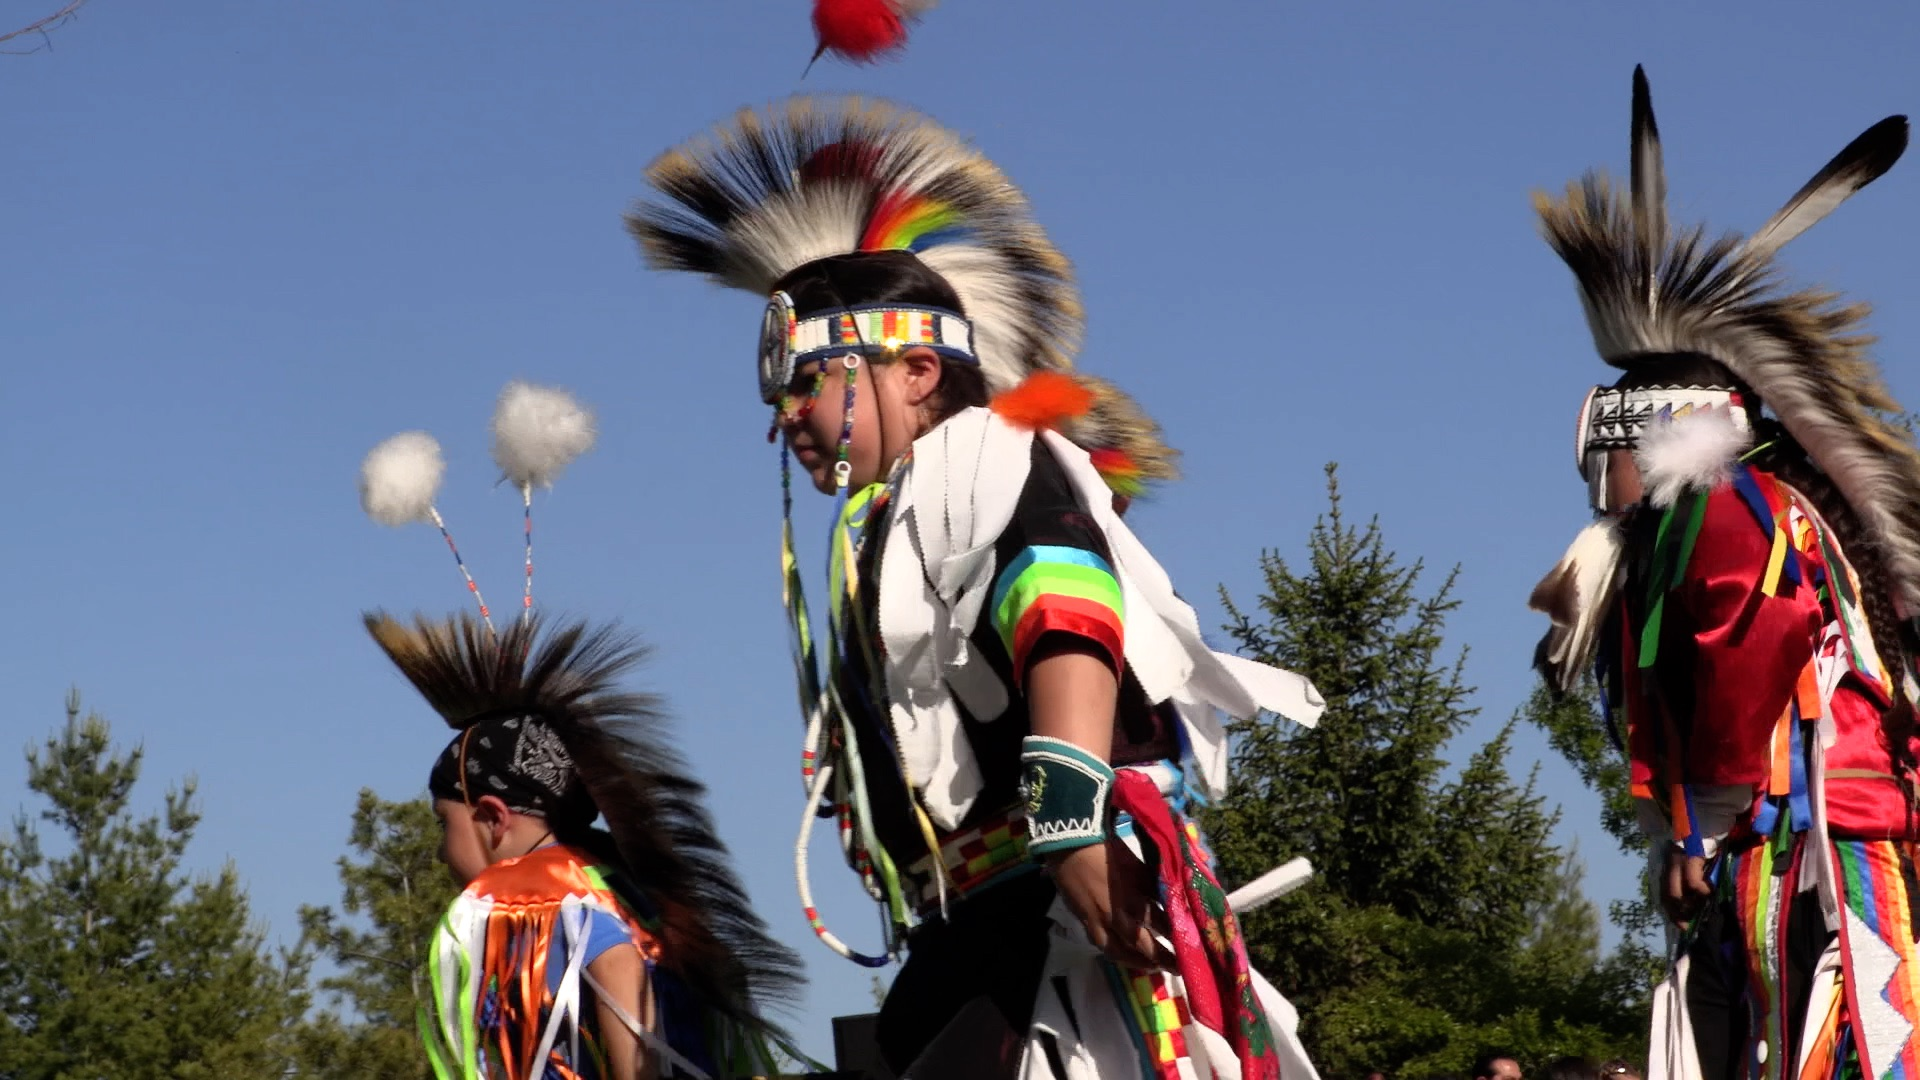 Indian Community School end-of-the-year powwow. Photo courtesy of NNS.